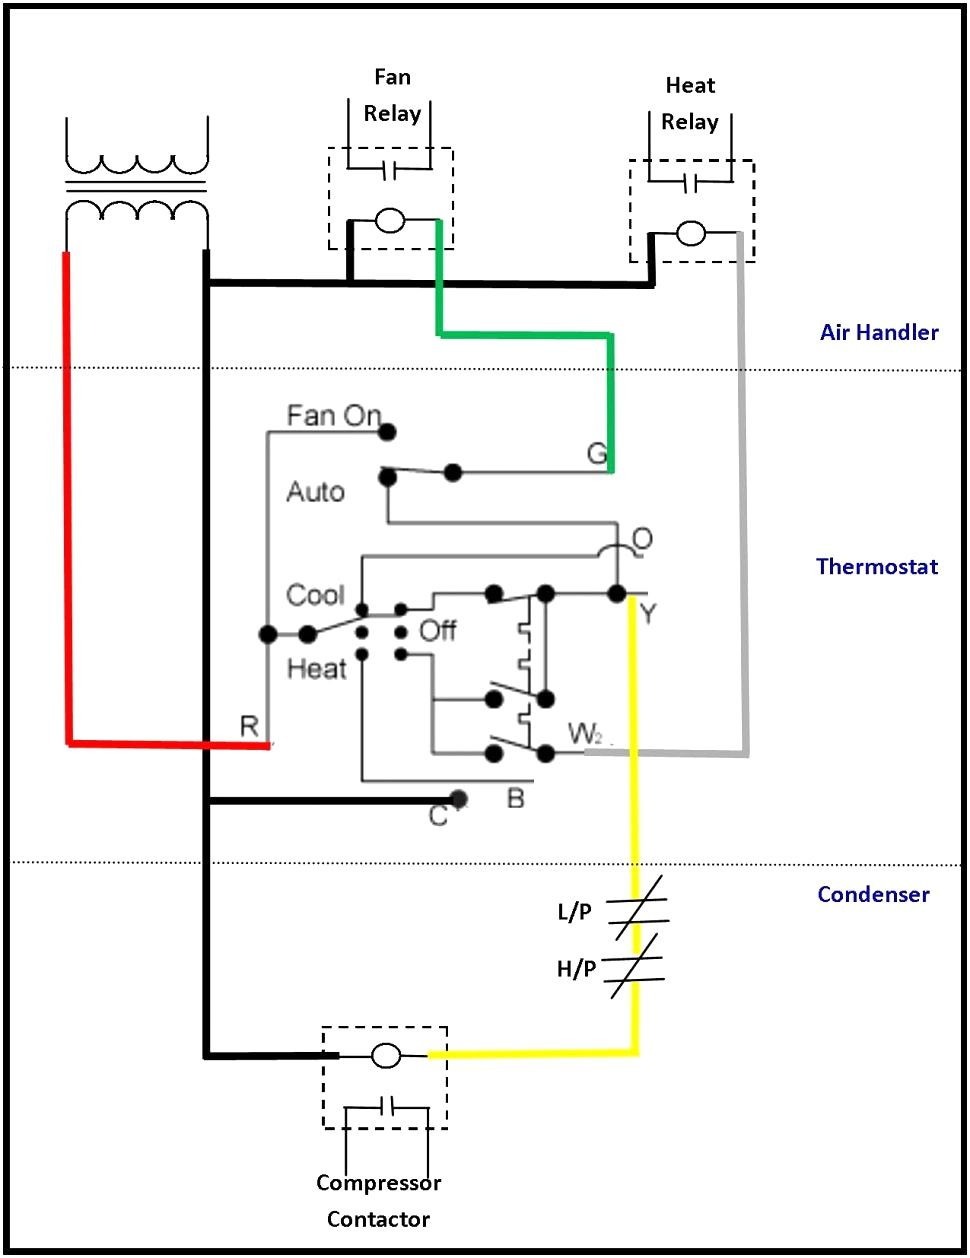 5 Pin Bosch Relay Wiring Diagram - fitfathers.me Blue Tooth, Laptops,  Diagram